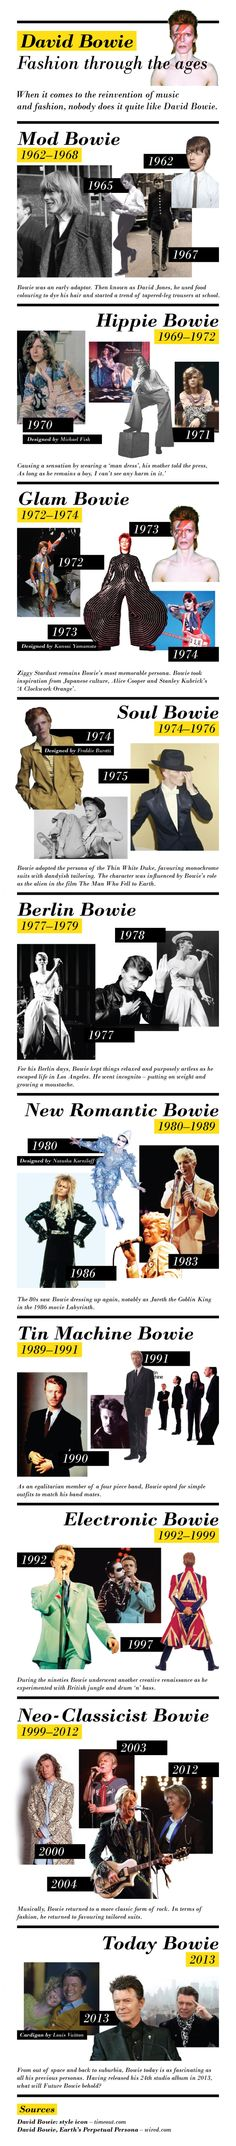 David Bowie Fashion Through the Ages Infographic